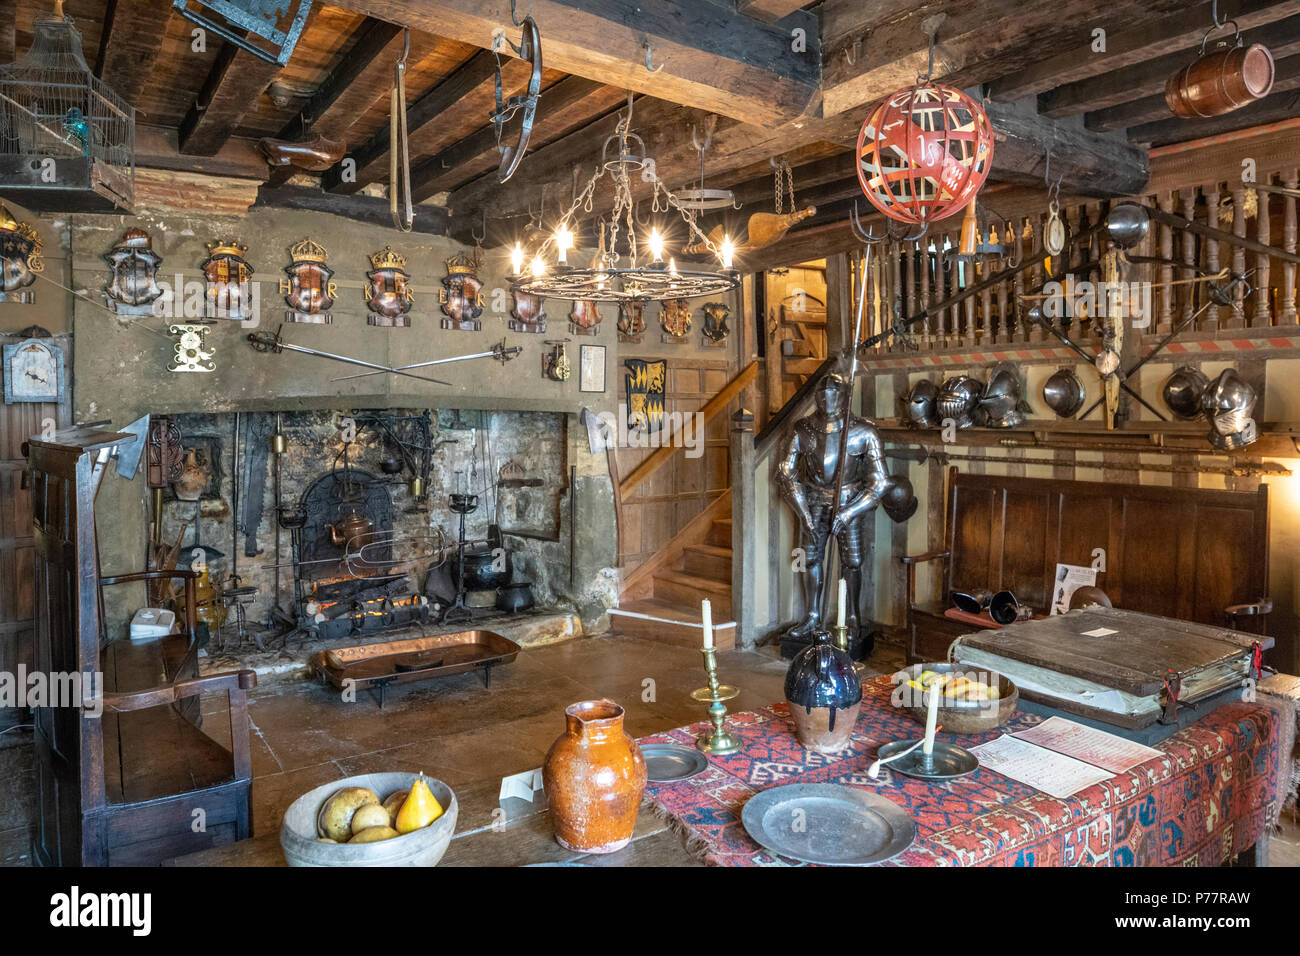 The kitchen at Snowshill Manor in the Cotswold village of Snowshill, Gloucestershire UK Stock Photo